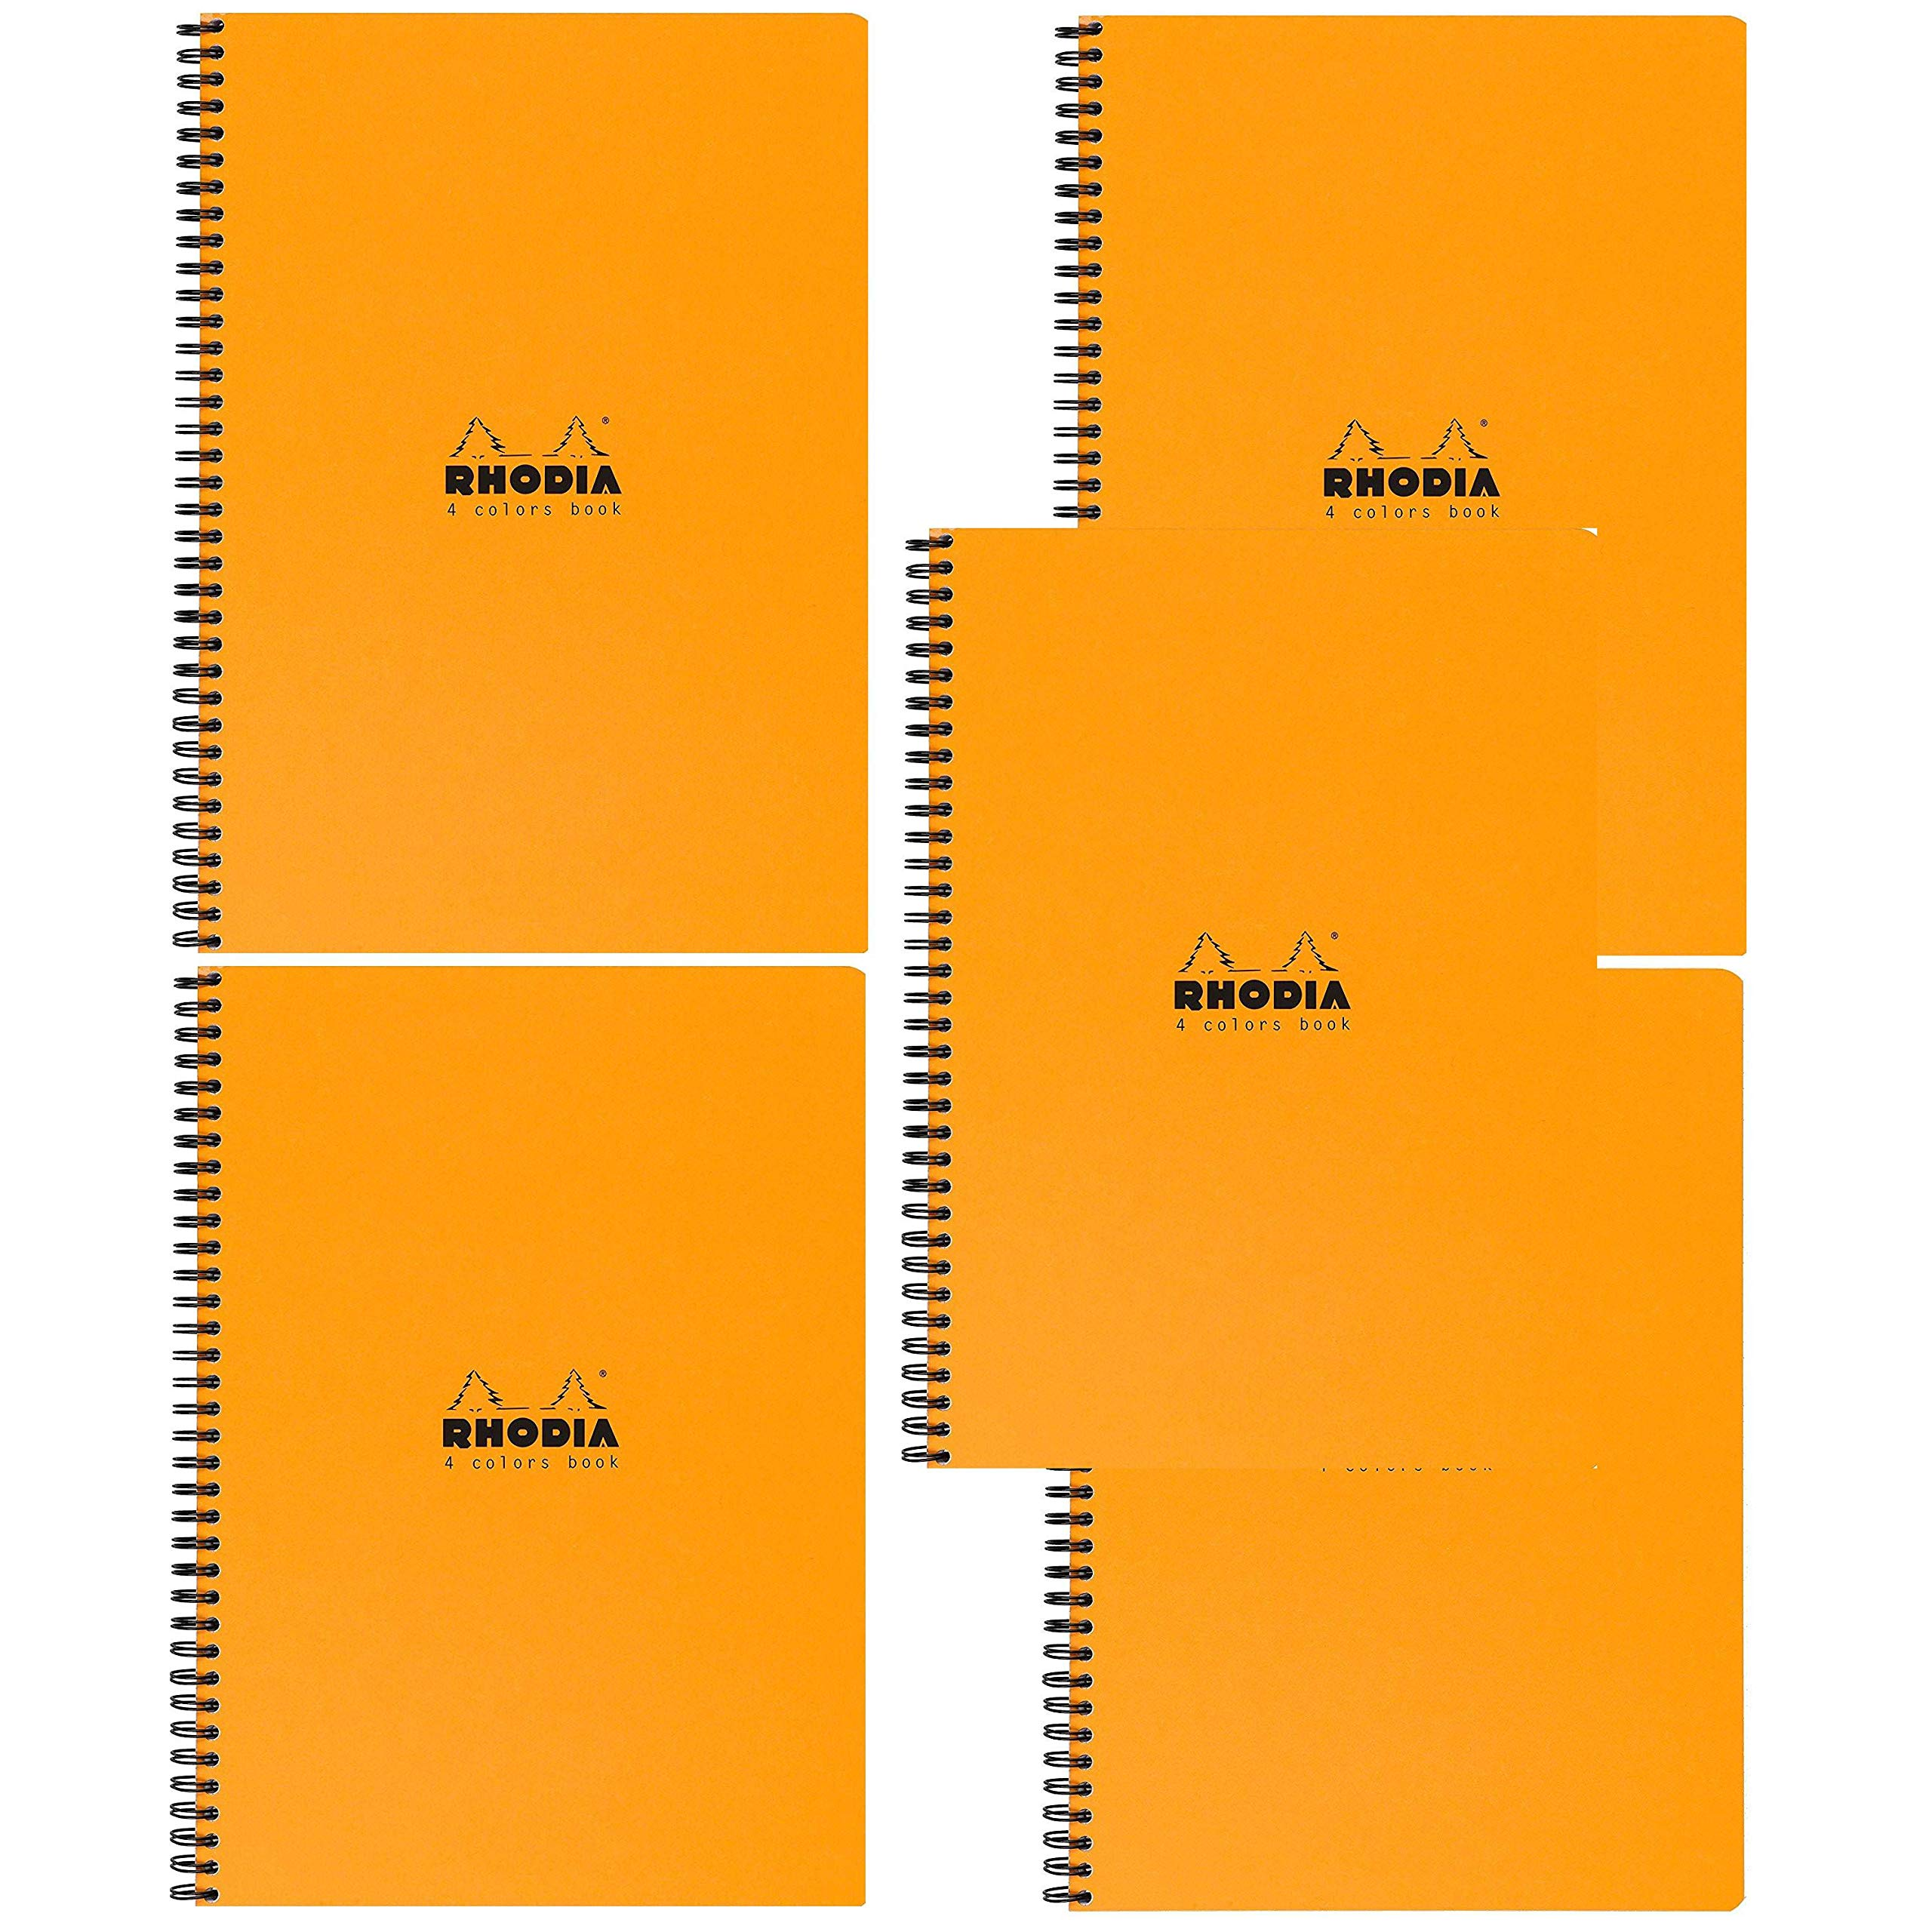 Rhodia 4 Color Book - Lined w/margin 80 sheets - 9 x 11 3/4 - Orange cover, Pack of 5 by Rhodia